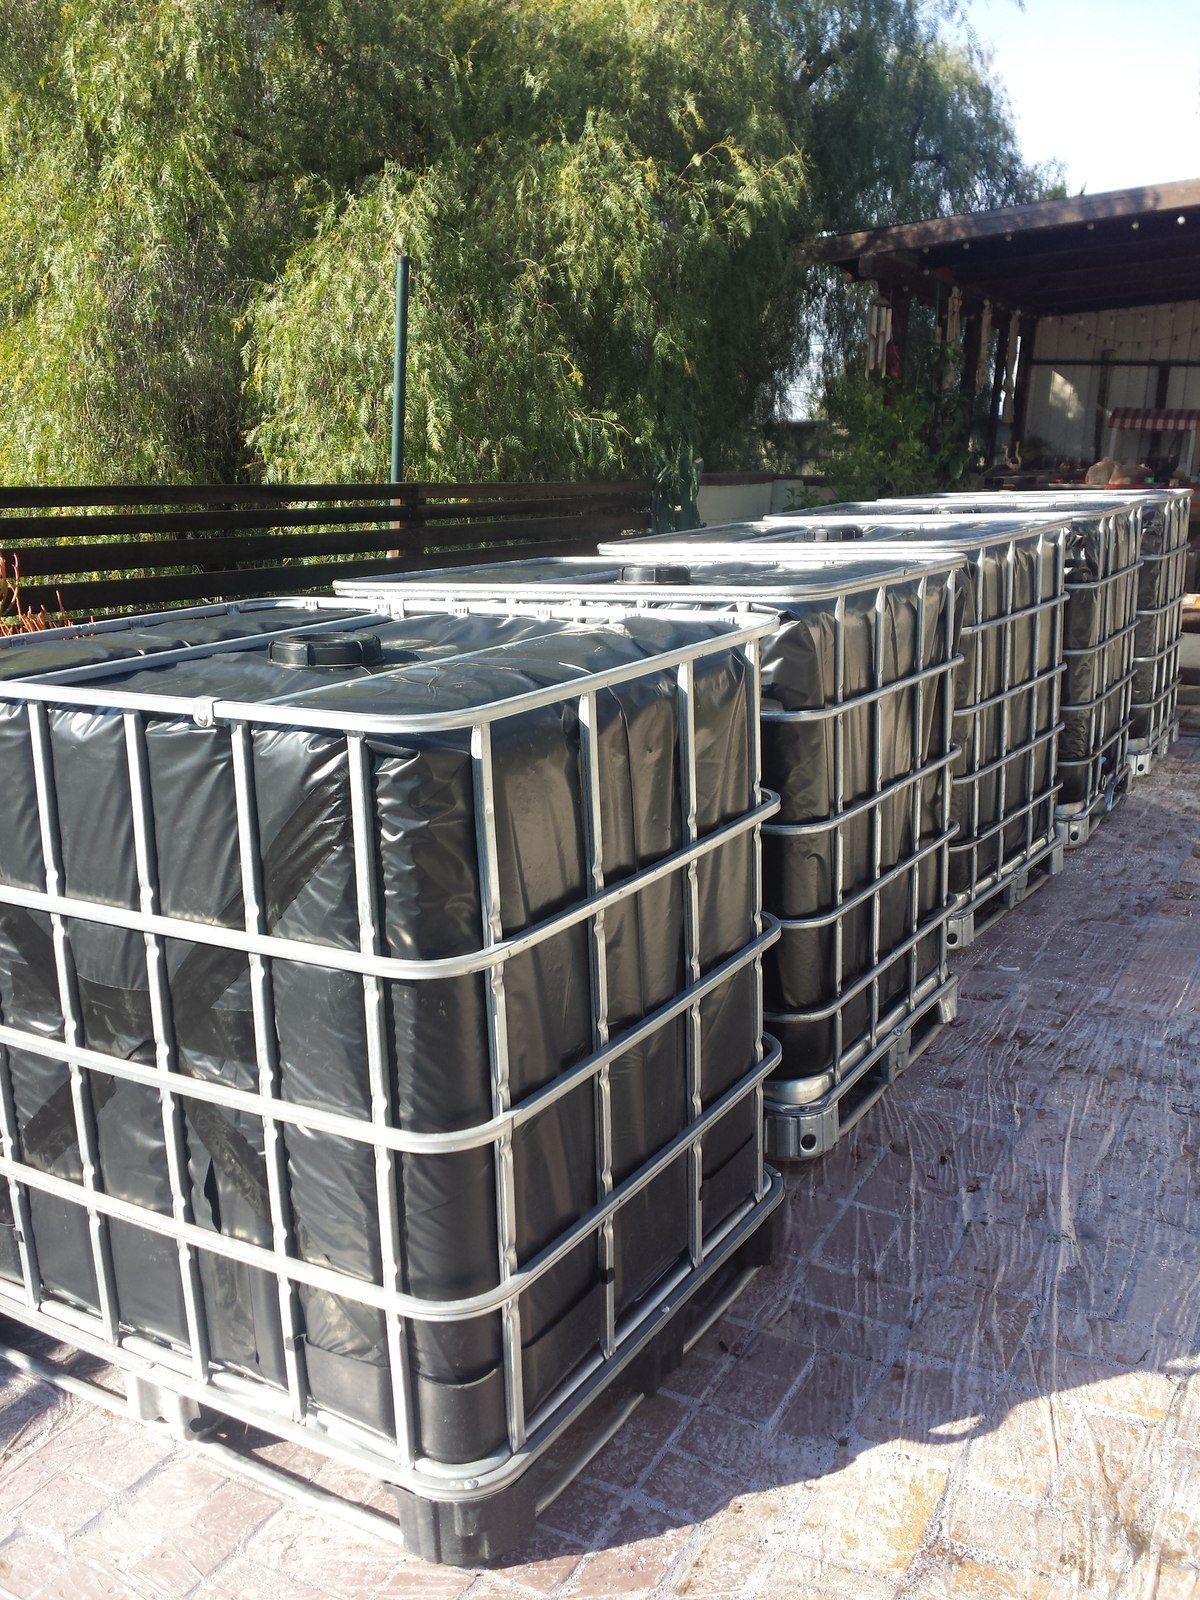 Rainwater Harvesting Ibc Totes Wrapped In 6mm Plastic The Greenman Project Wassertonne Regenwasser Abwasser